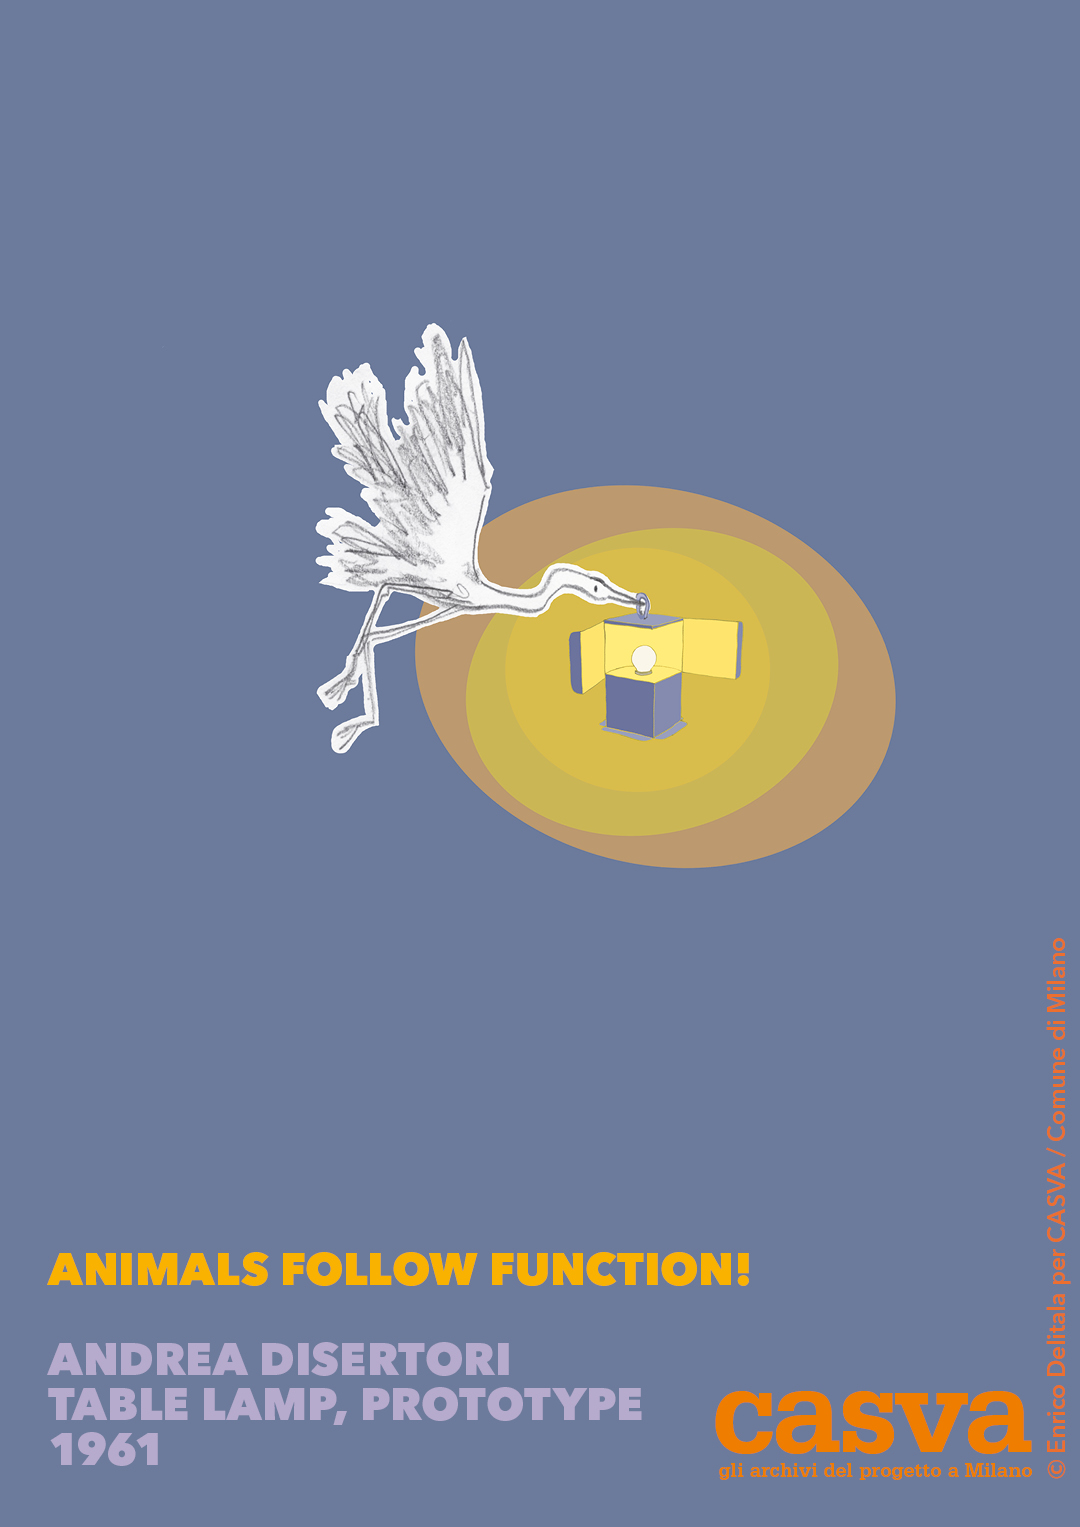 Airone: Enrico Delitala illustrator animals follow function form follows function CASVA Andrea Disertori